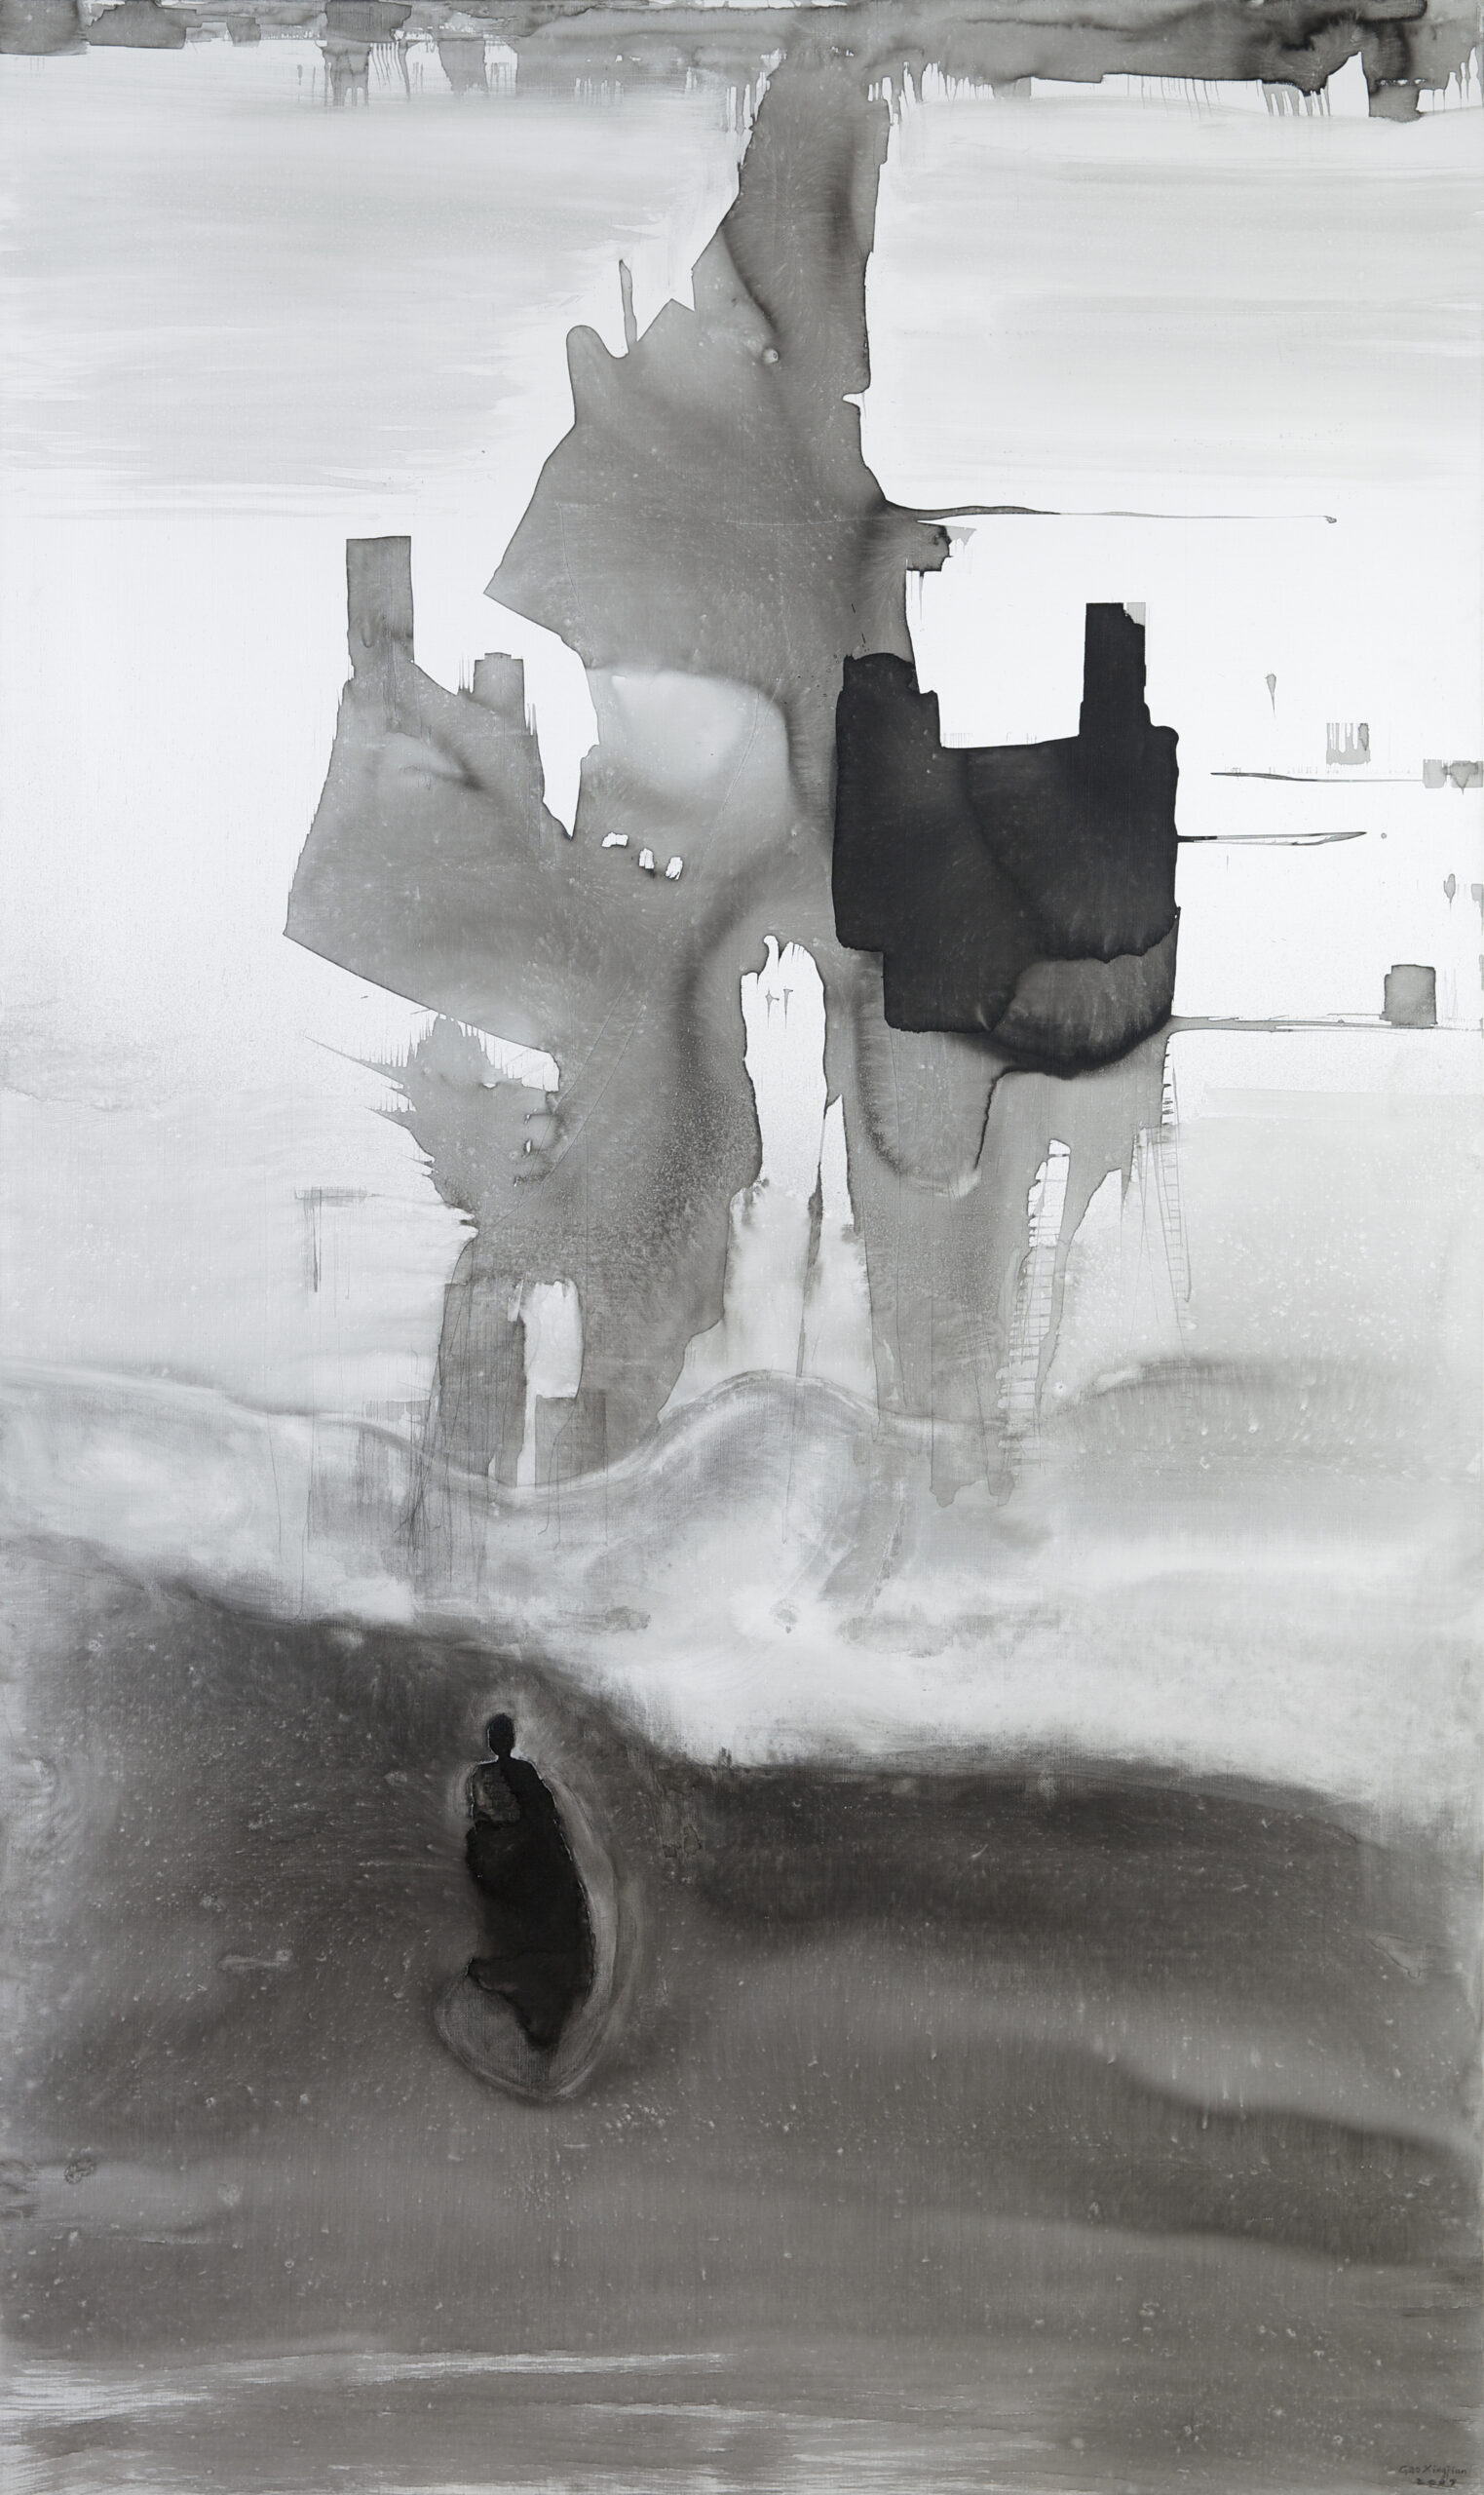 Gao Xingjian Nostalgia, 2007 Signed and dated lower right Ink on canvas 195 x 98 cm